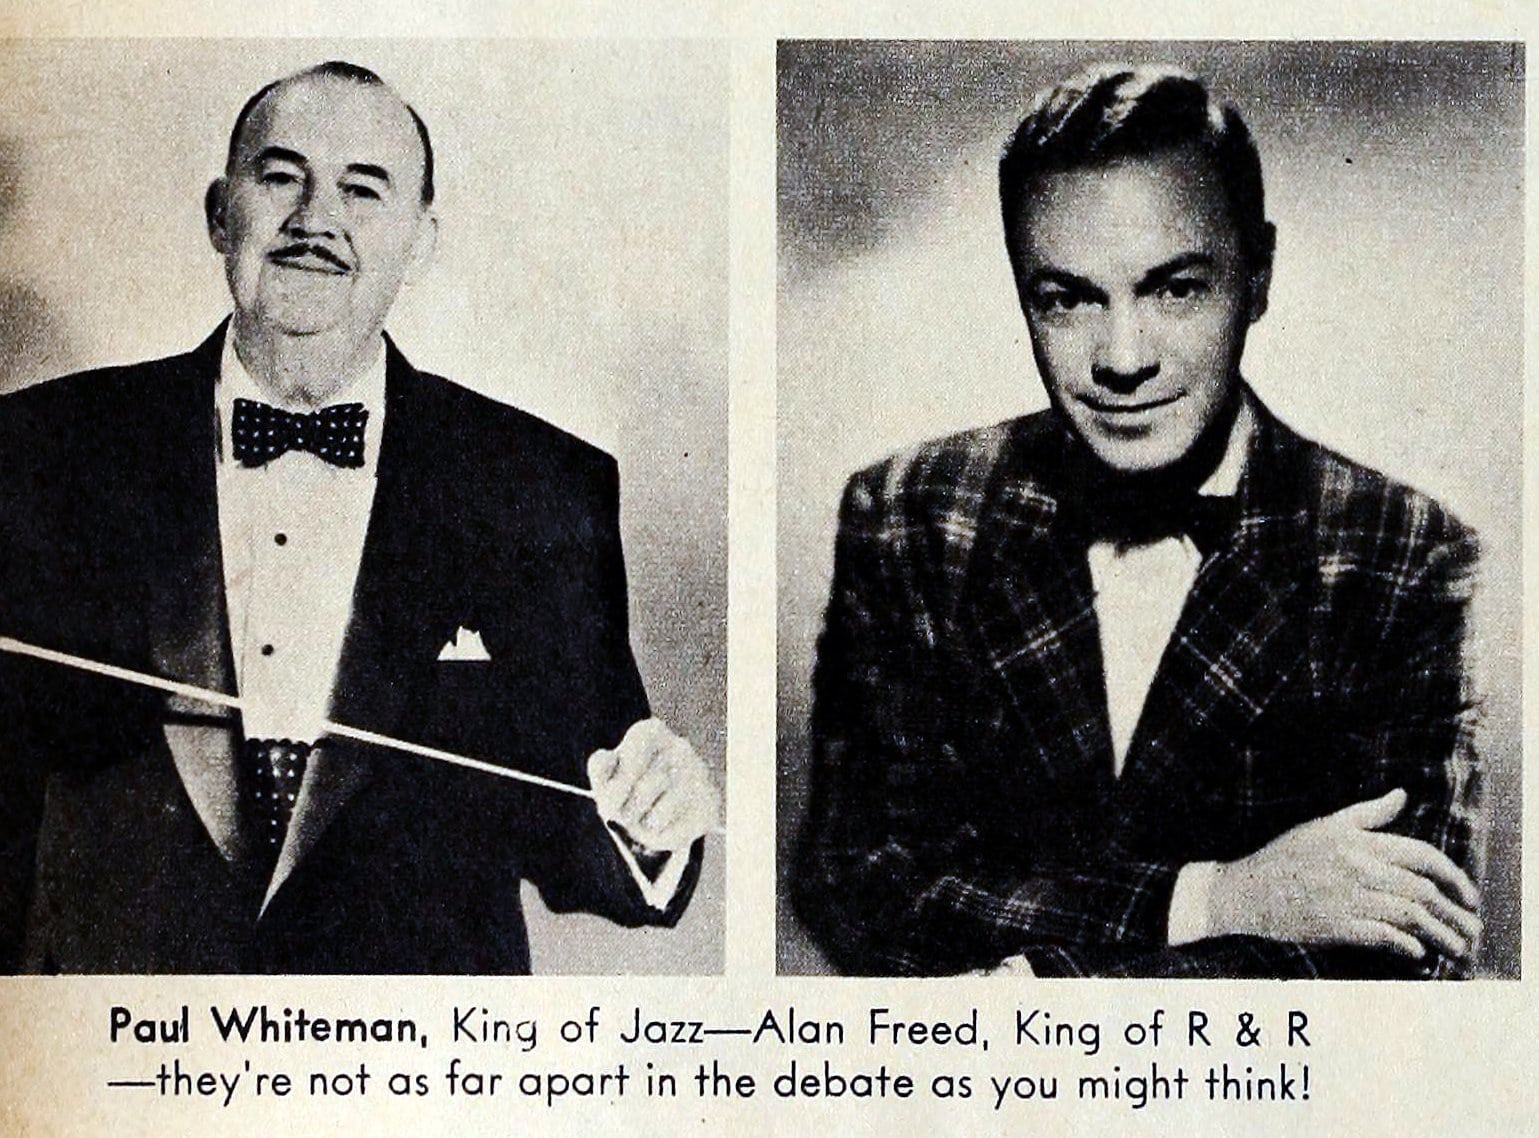 Rock n roll music in the 1950s (3)